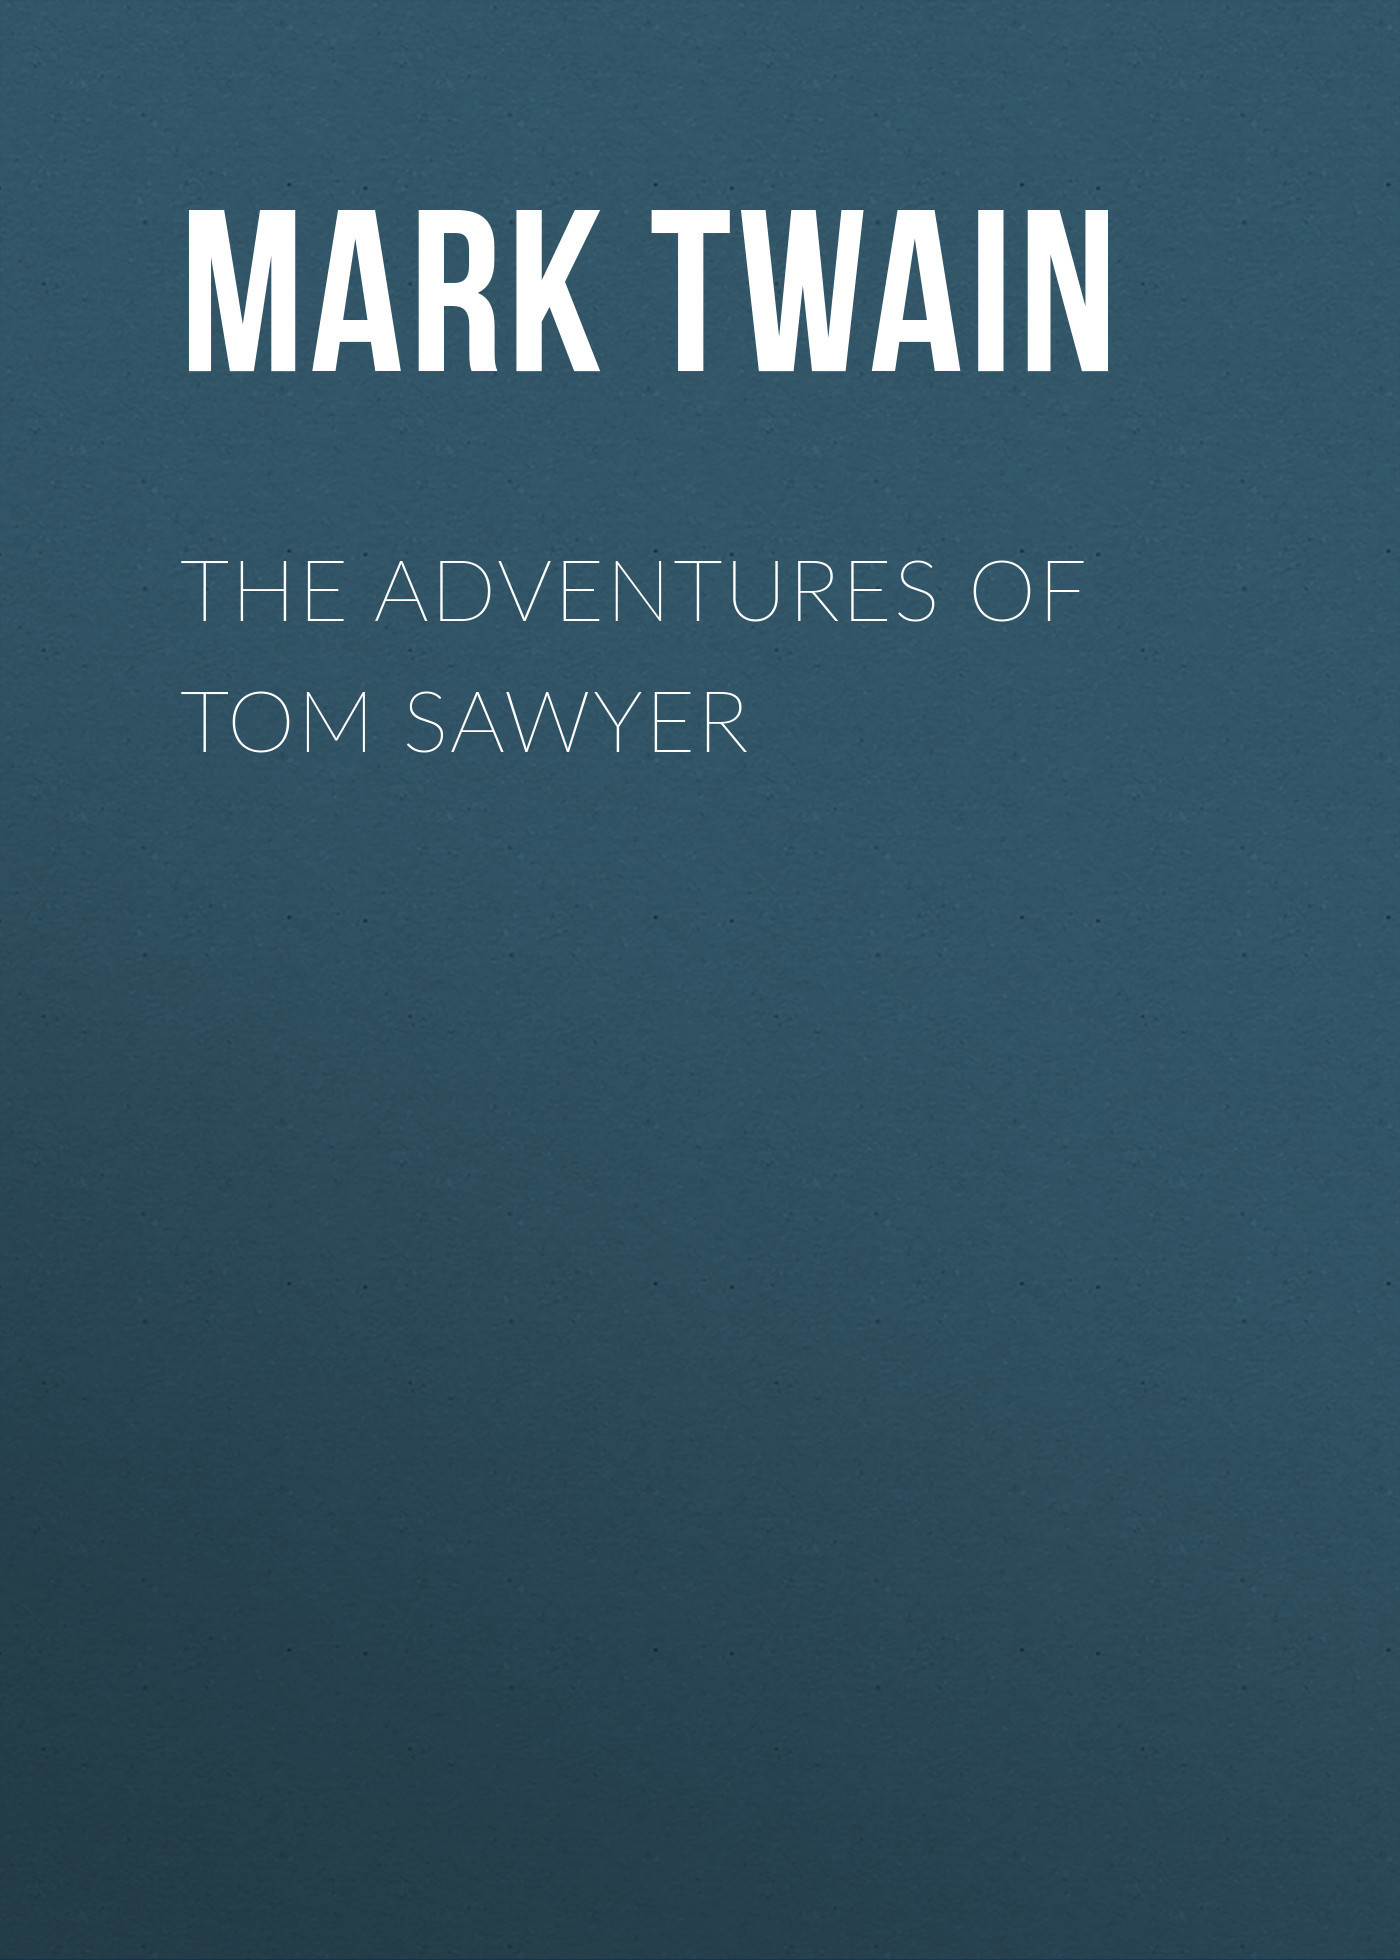 Марк Твен The Adventures of Tom Sawyer malcolm kemp extreme events robust portfolio construction in the presence of fat tails isbn 9780470976791